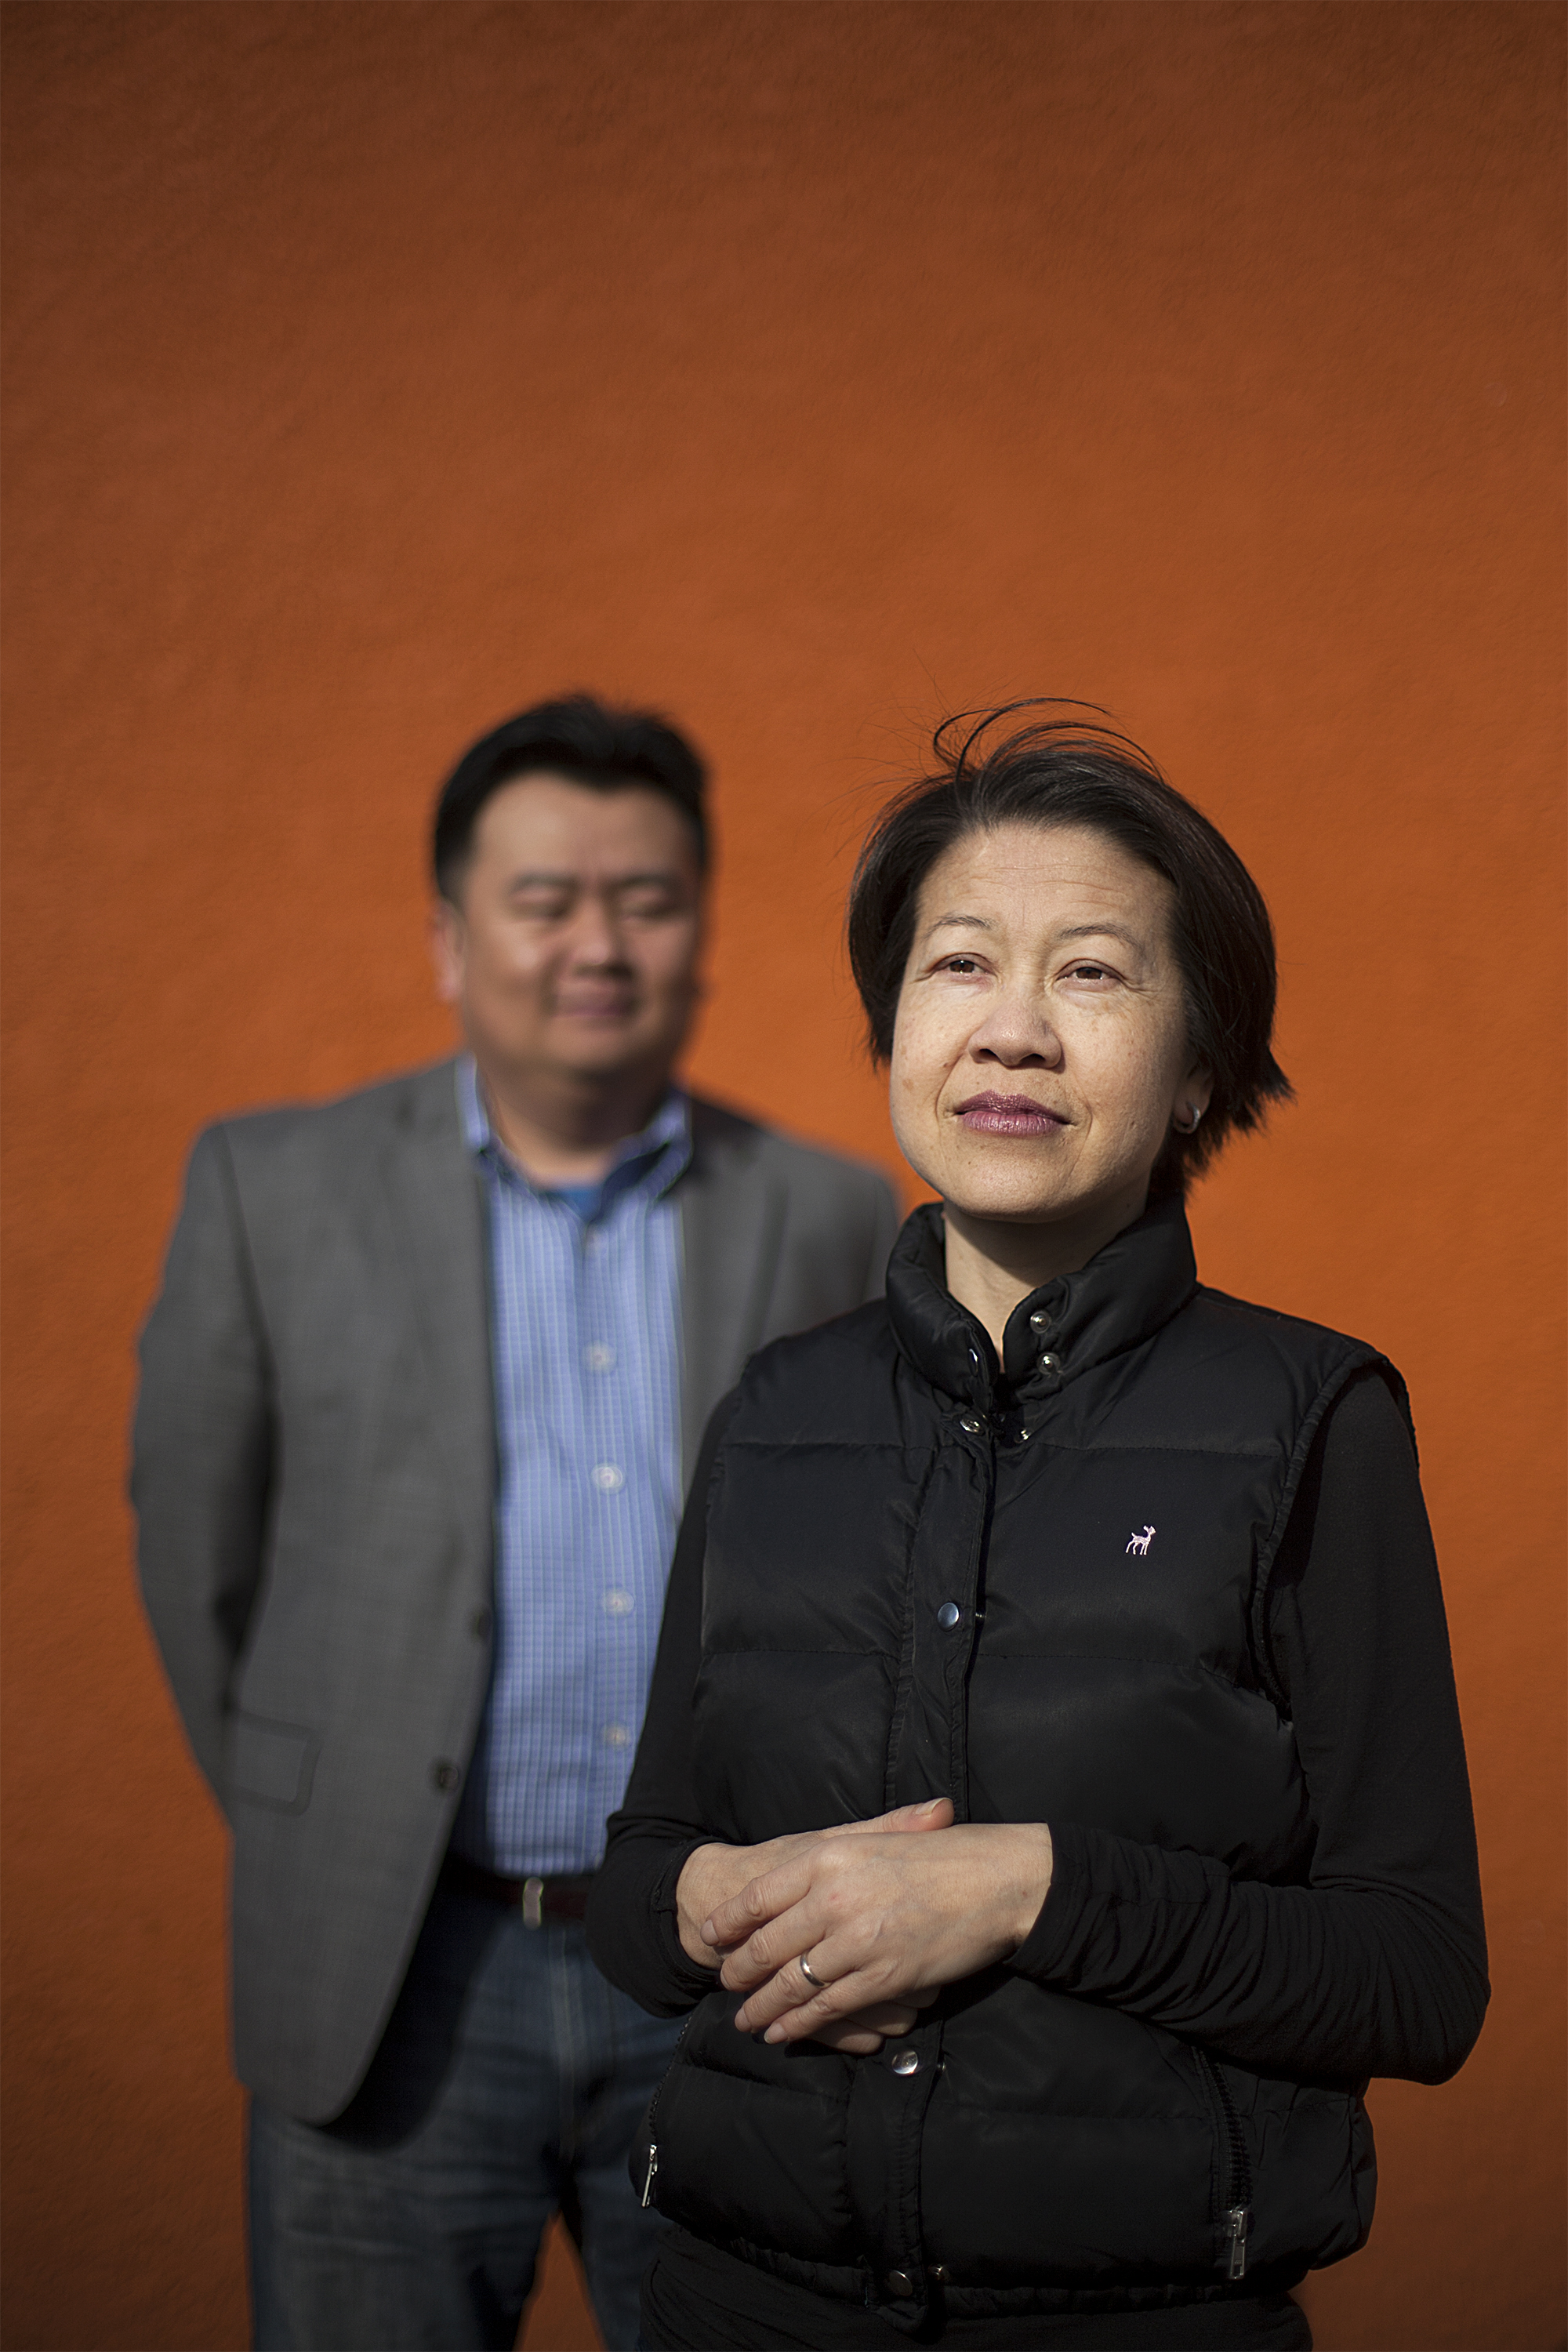 Mai Neng Moua, pictured with her husband, City Councilman Blong Yang, published her memoir,  The Bride Price , this year. It explores the consequences she faced when she fought against traditional Hmong marriage customs.